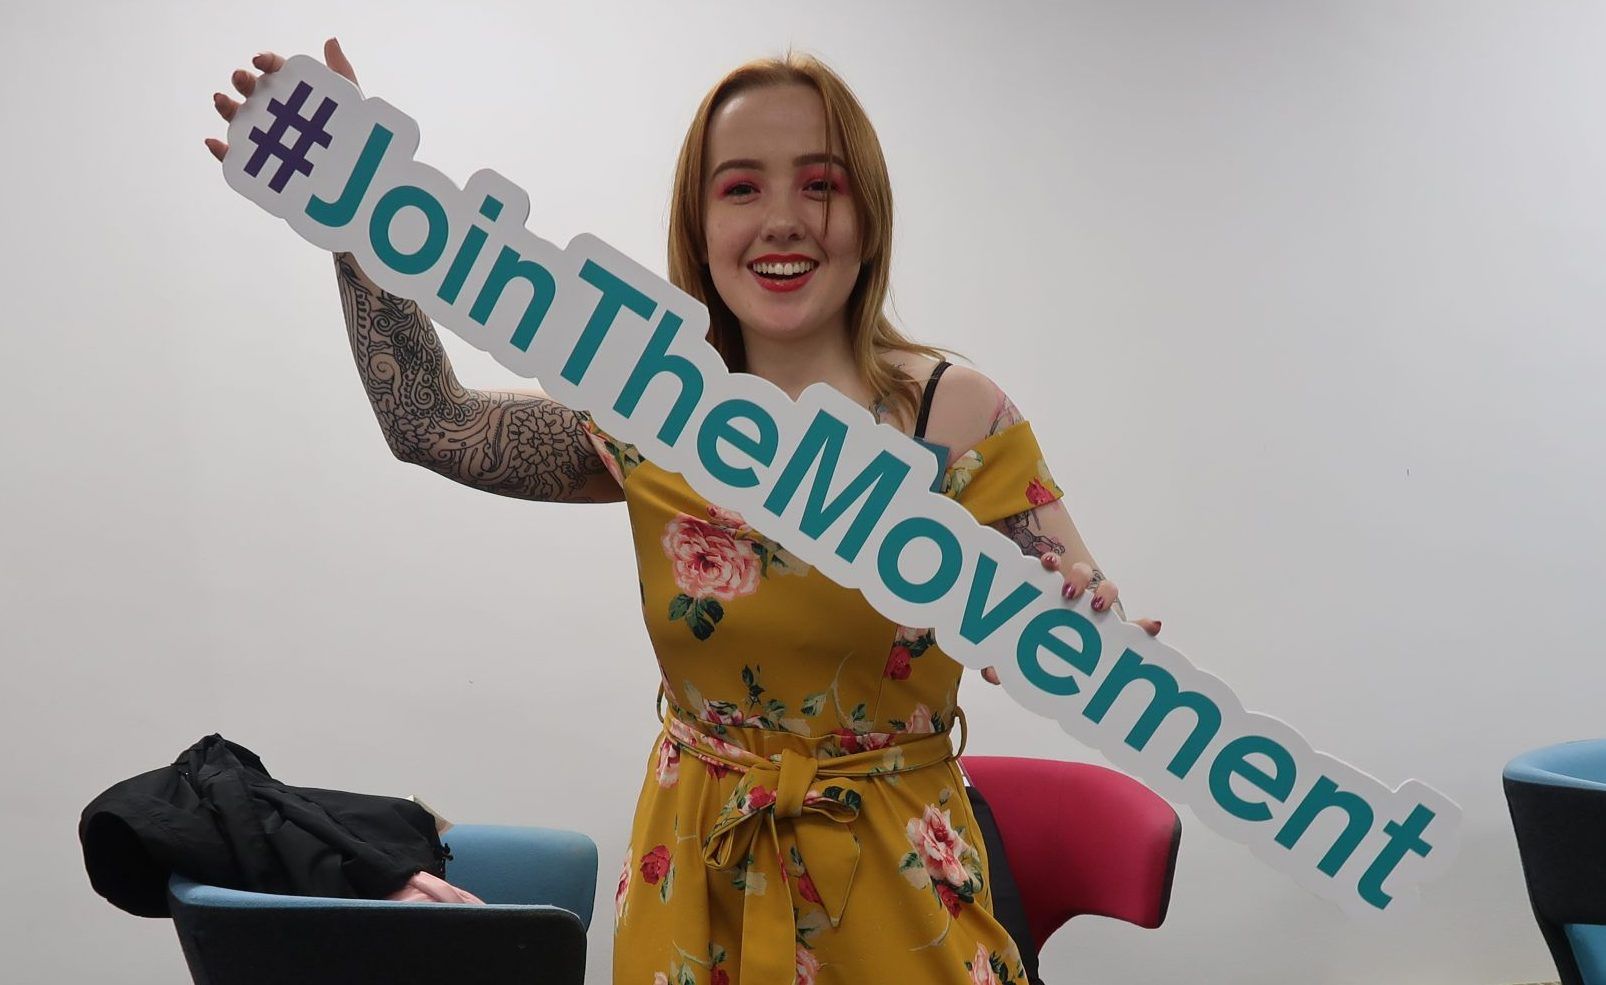 Young woman holding a sign that says #JoinTheMovement